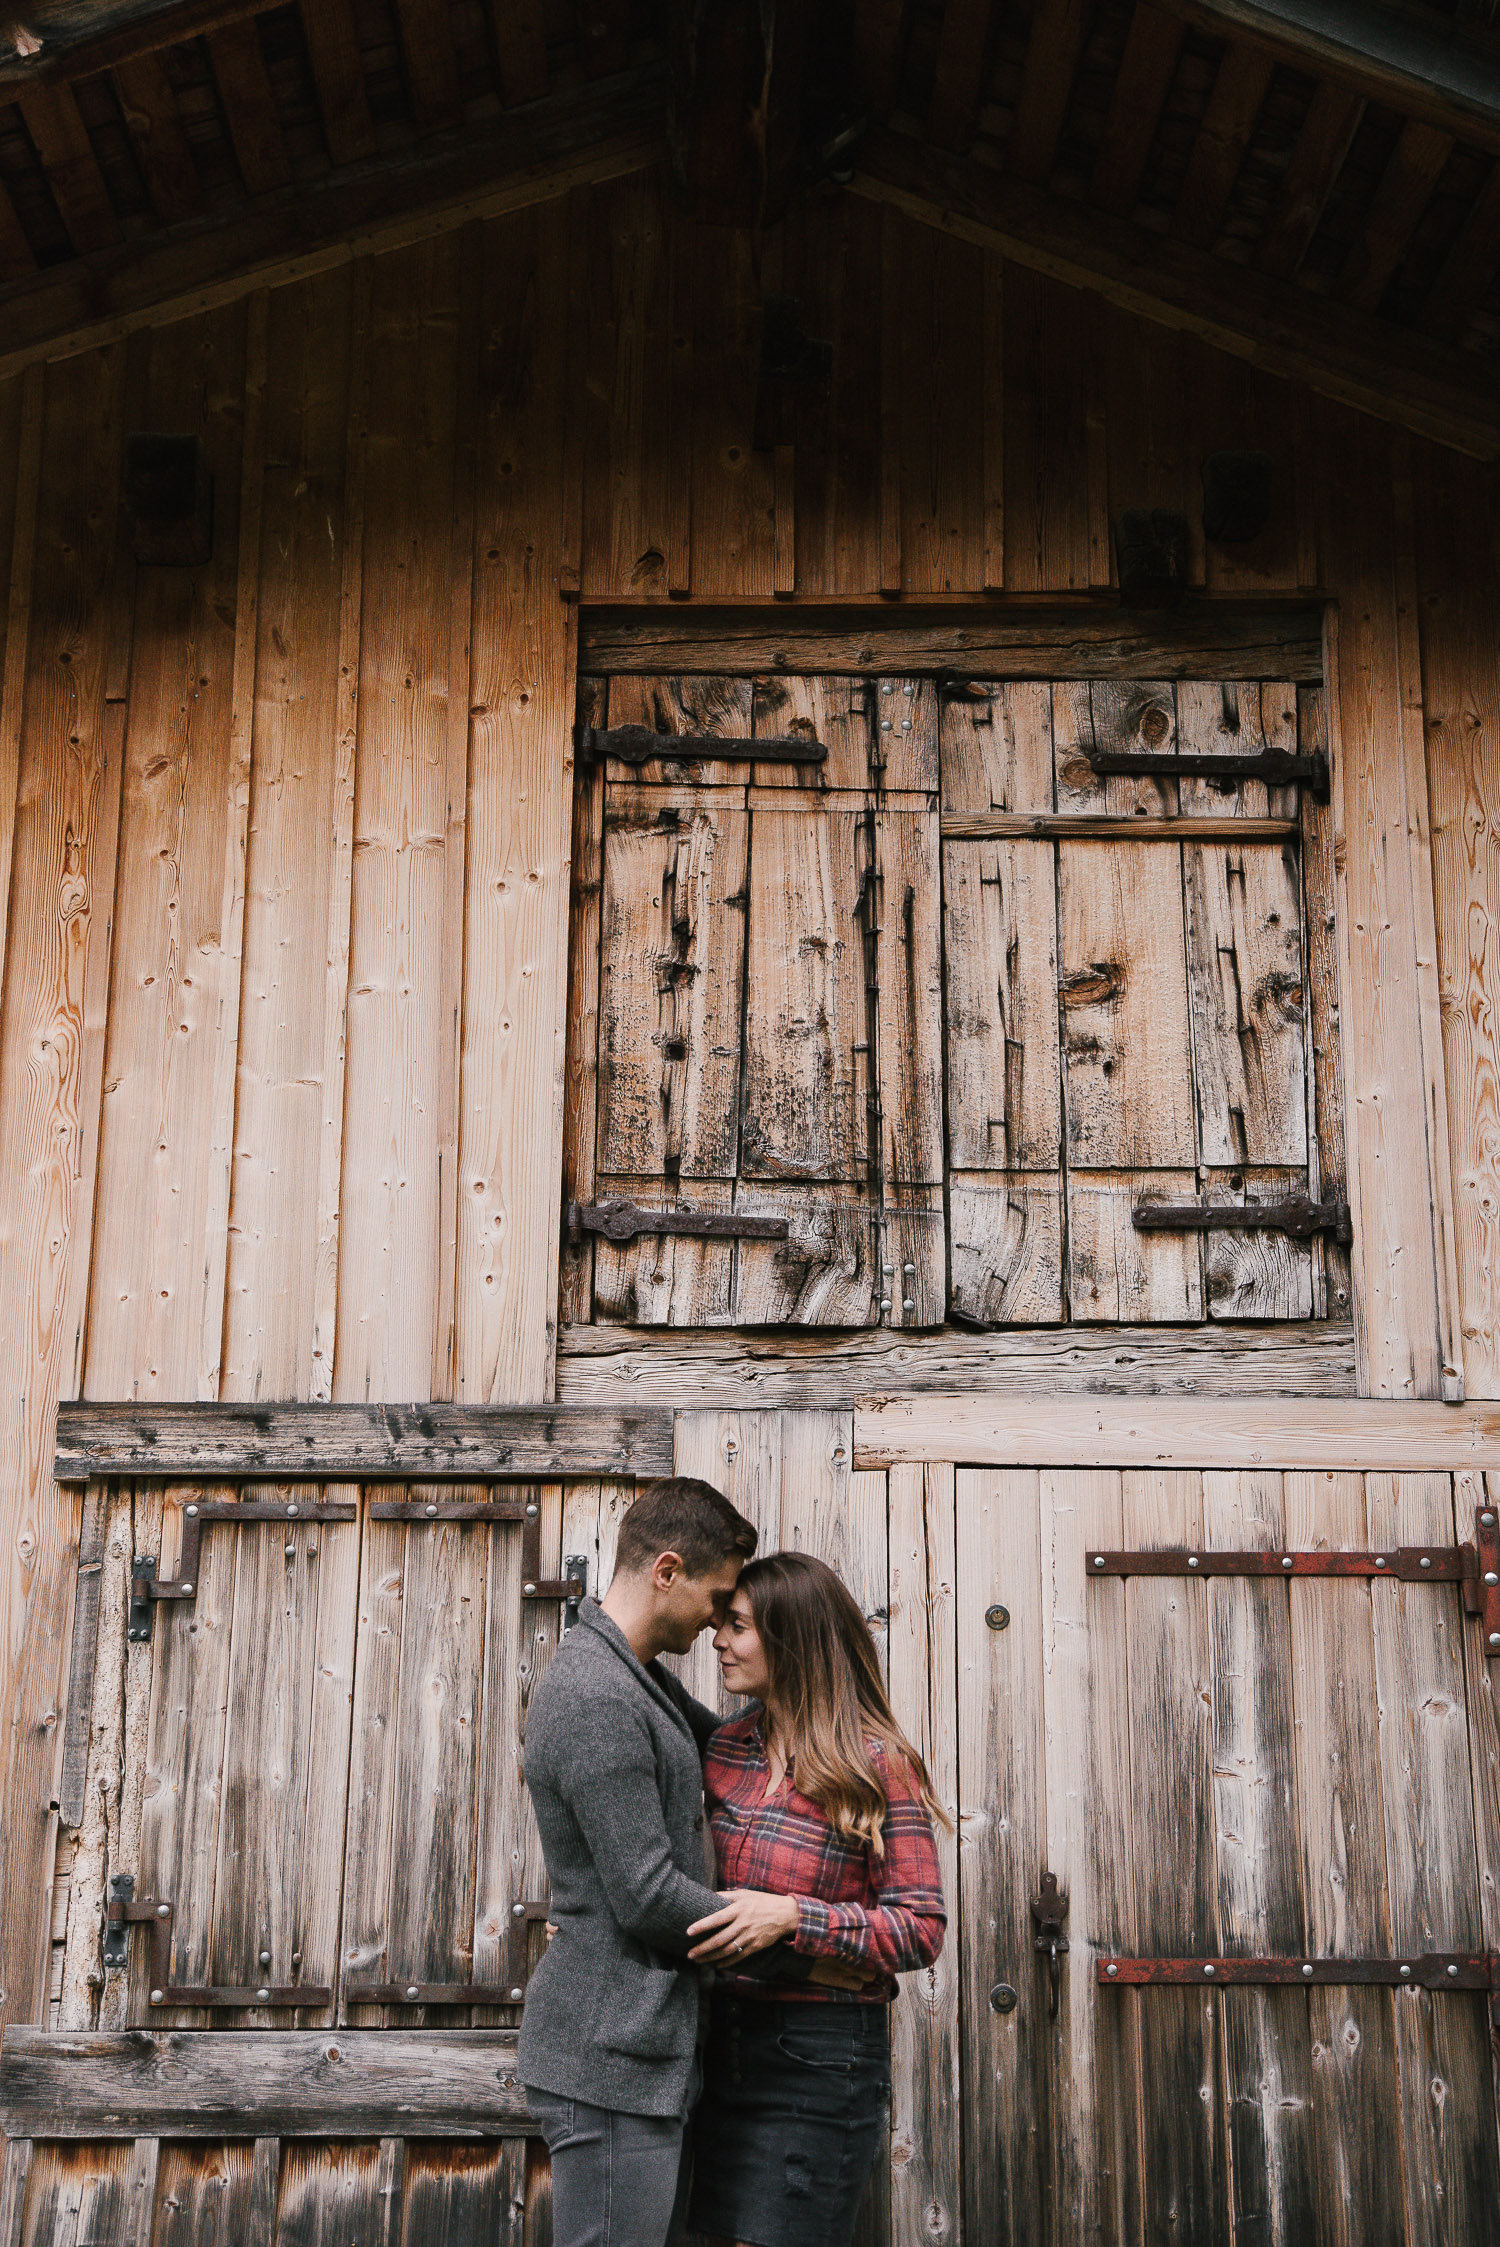 photographe mariage famille entreprise grenoble lyon annecy chambery seance engagement montagne alpes